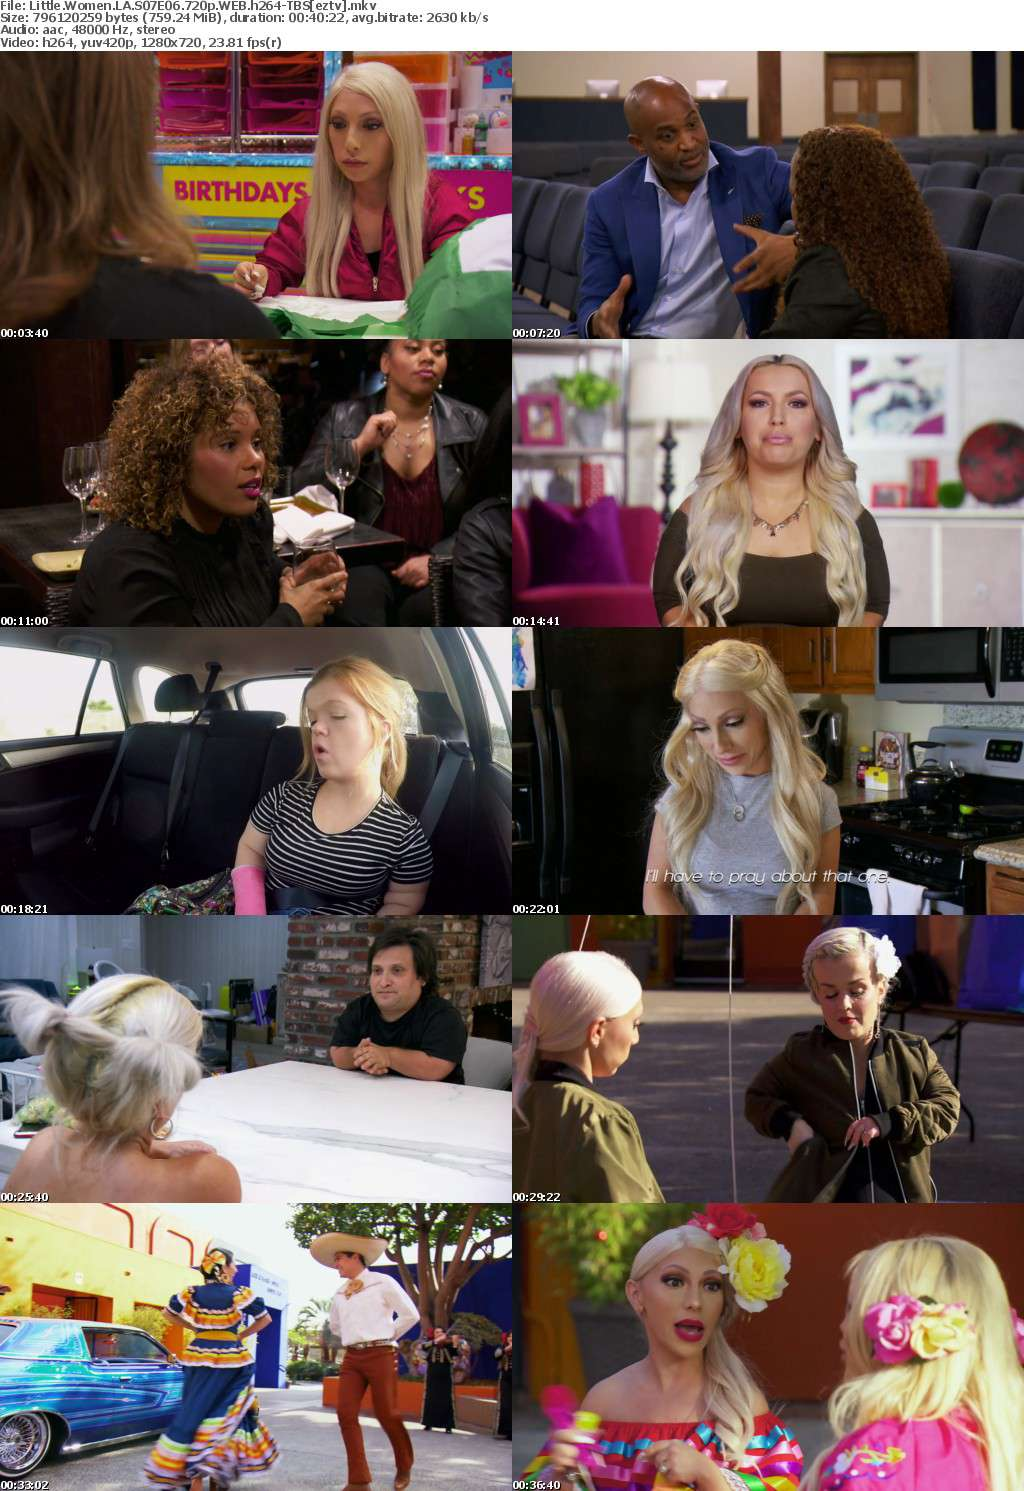 Little Women LA S07E06 720p WEB h264-TBS